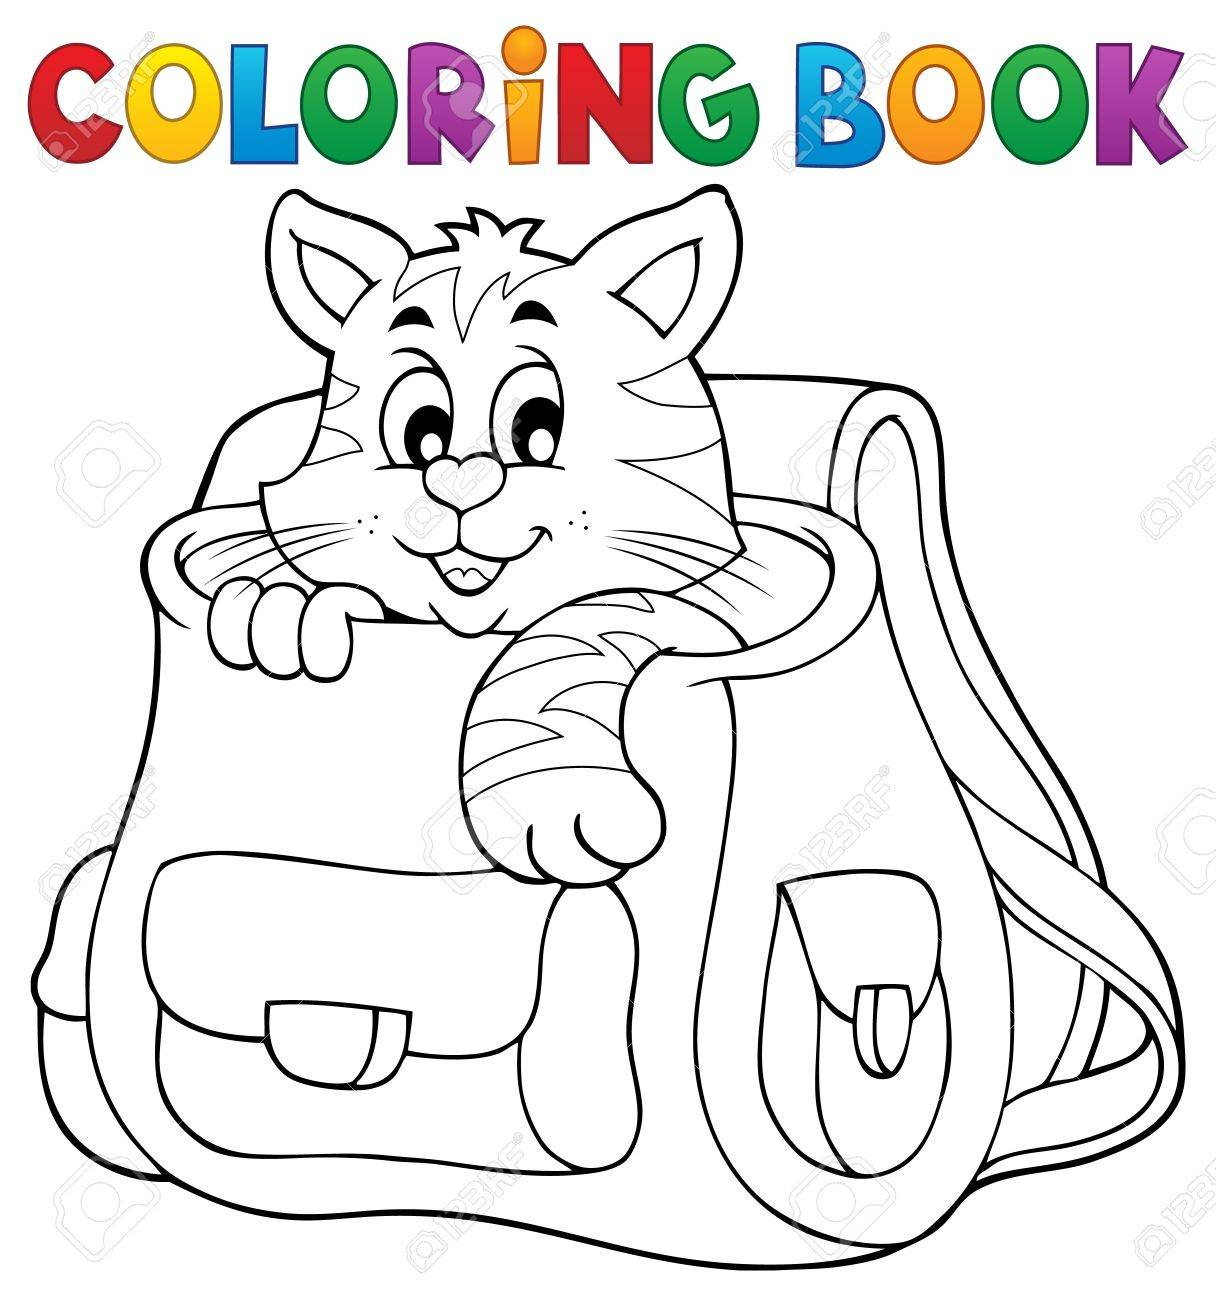 Coloring Book Cat In Schoolbag Royalty Free Cliparts, Vectors, And ...